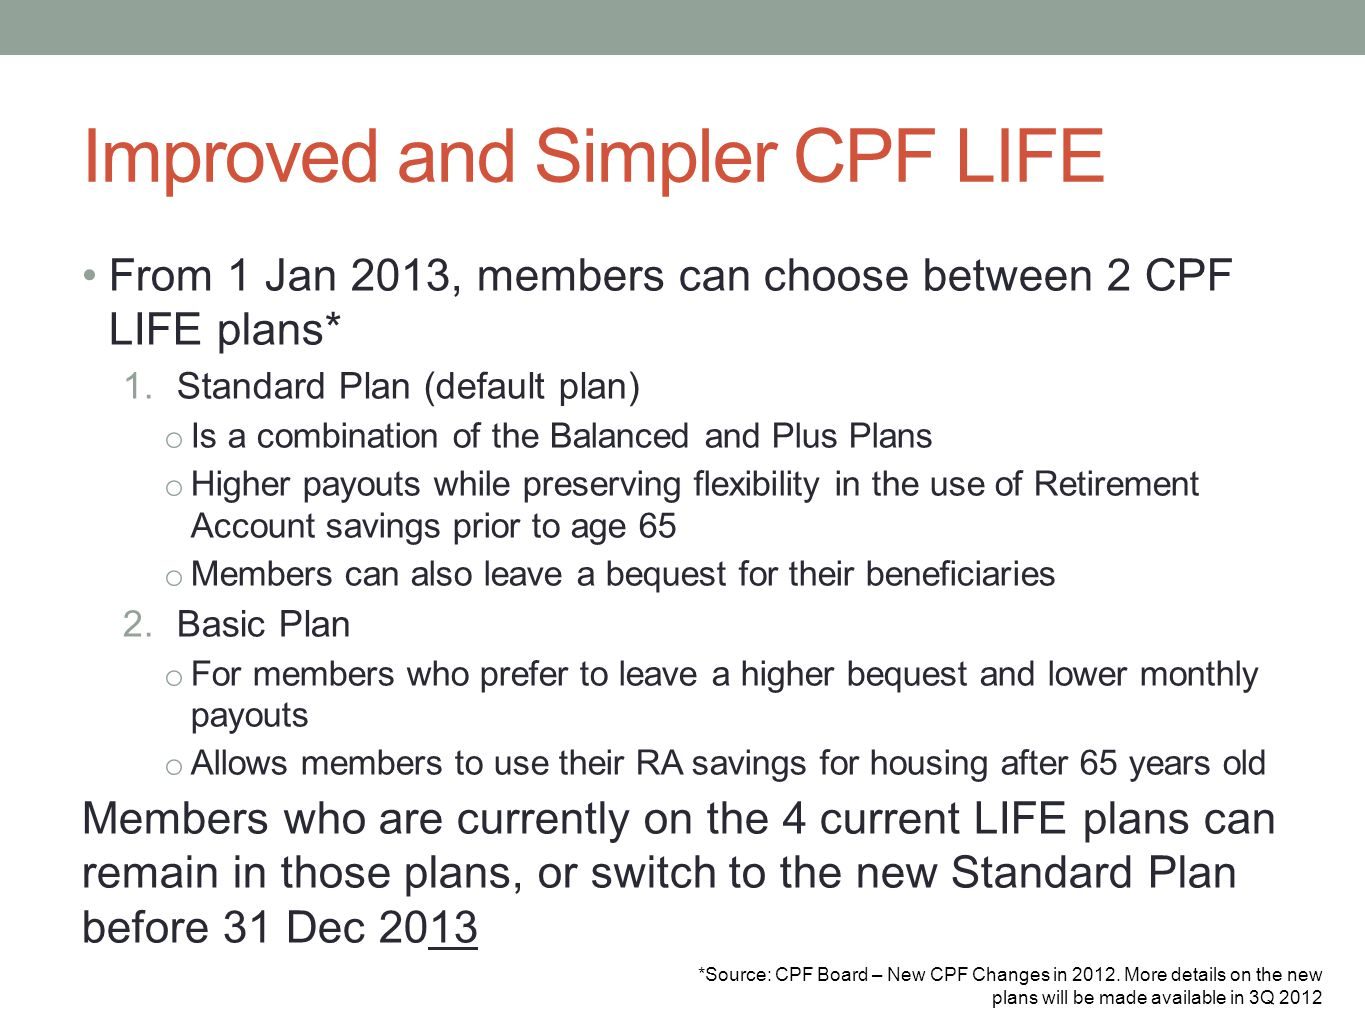 Improved and Simpler CPF LIFE